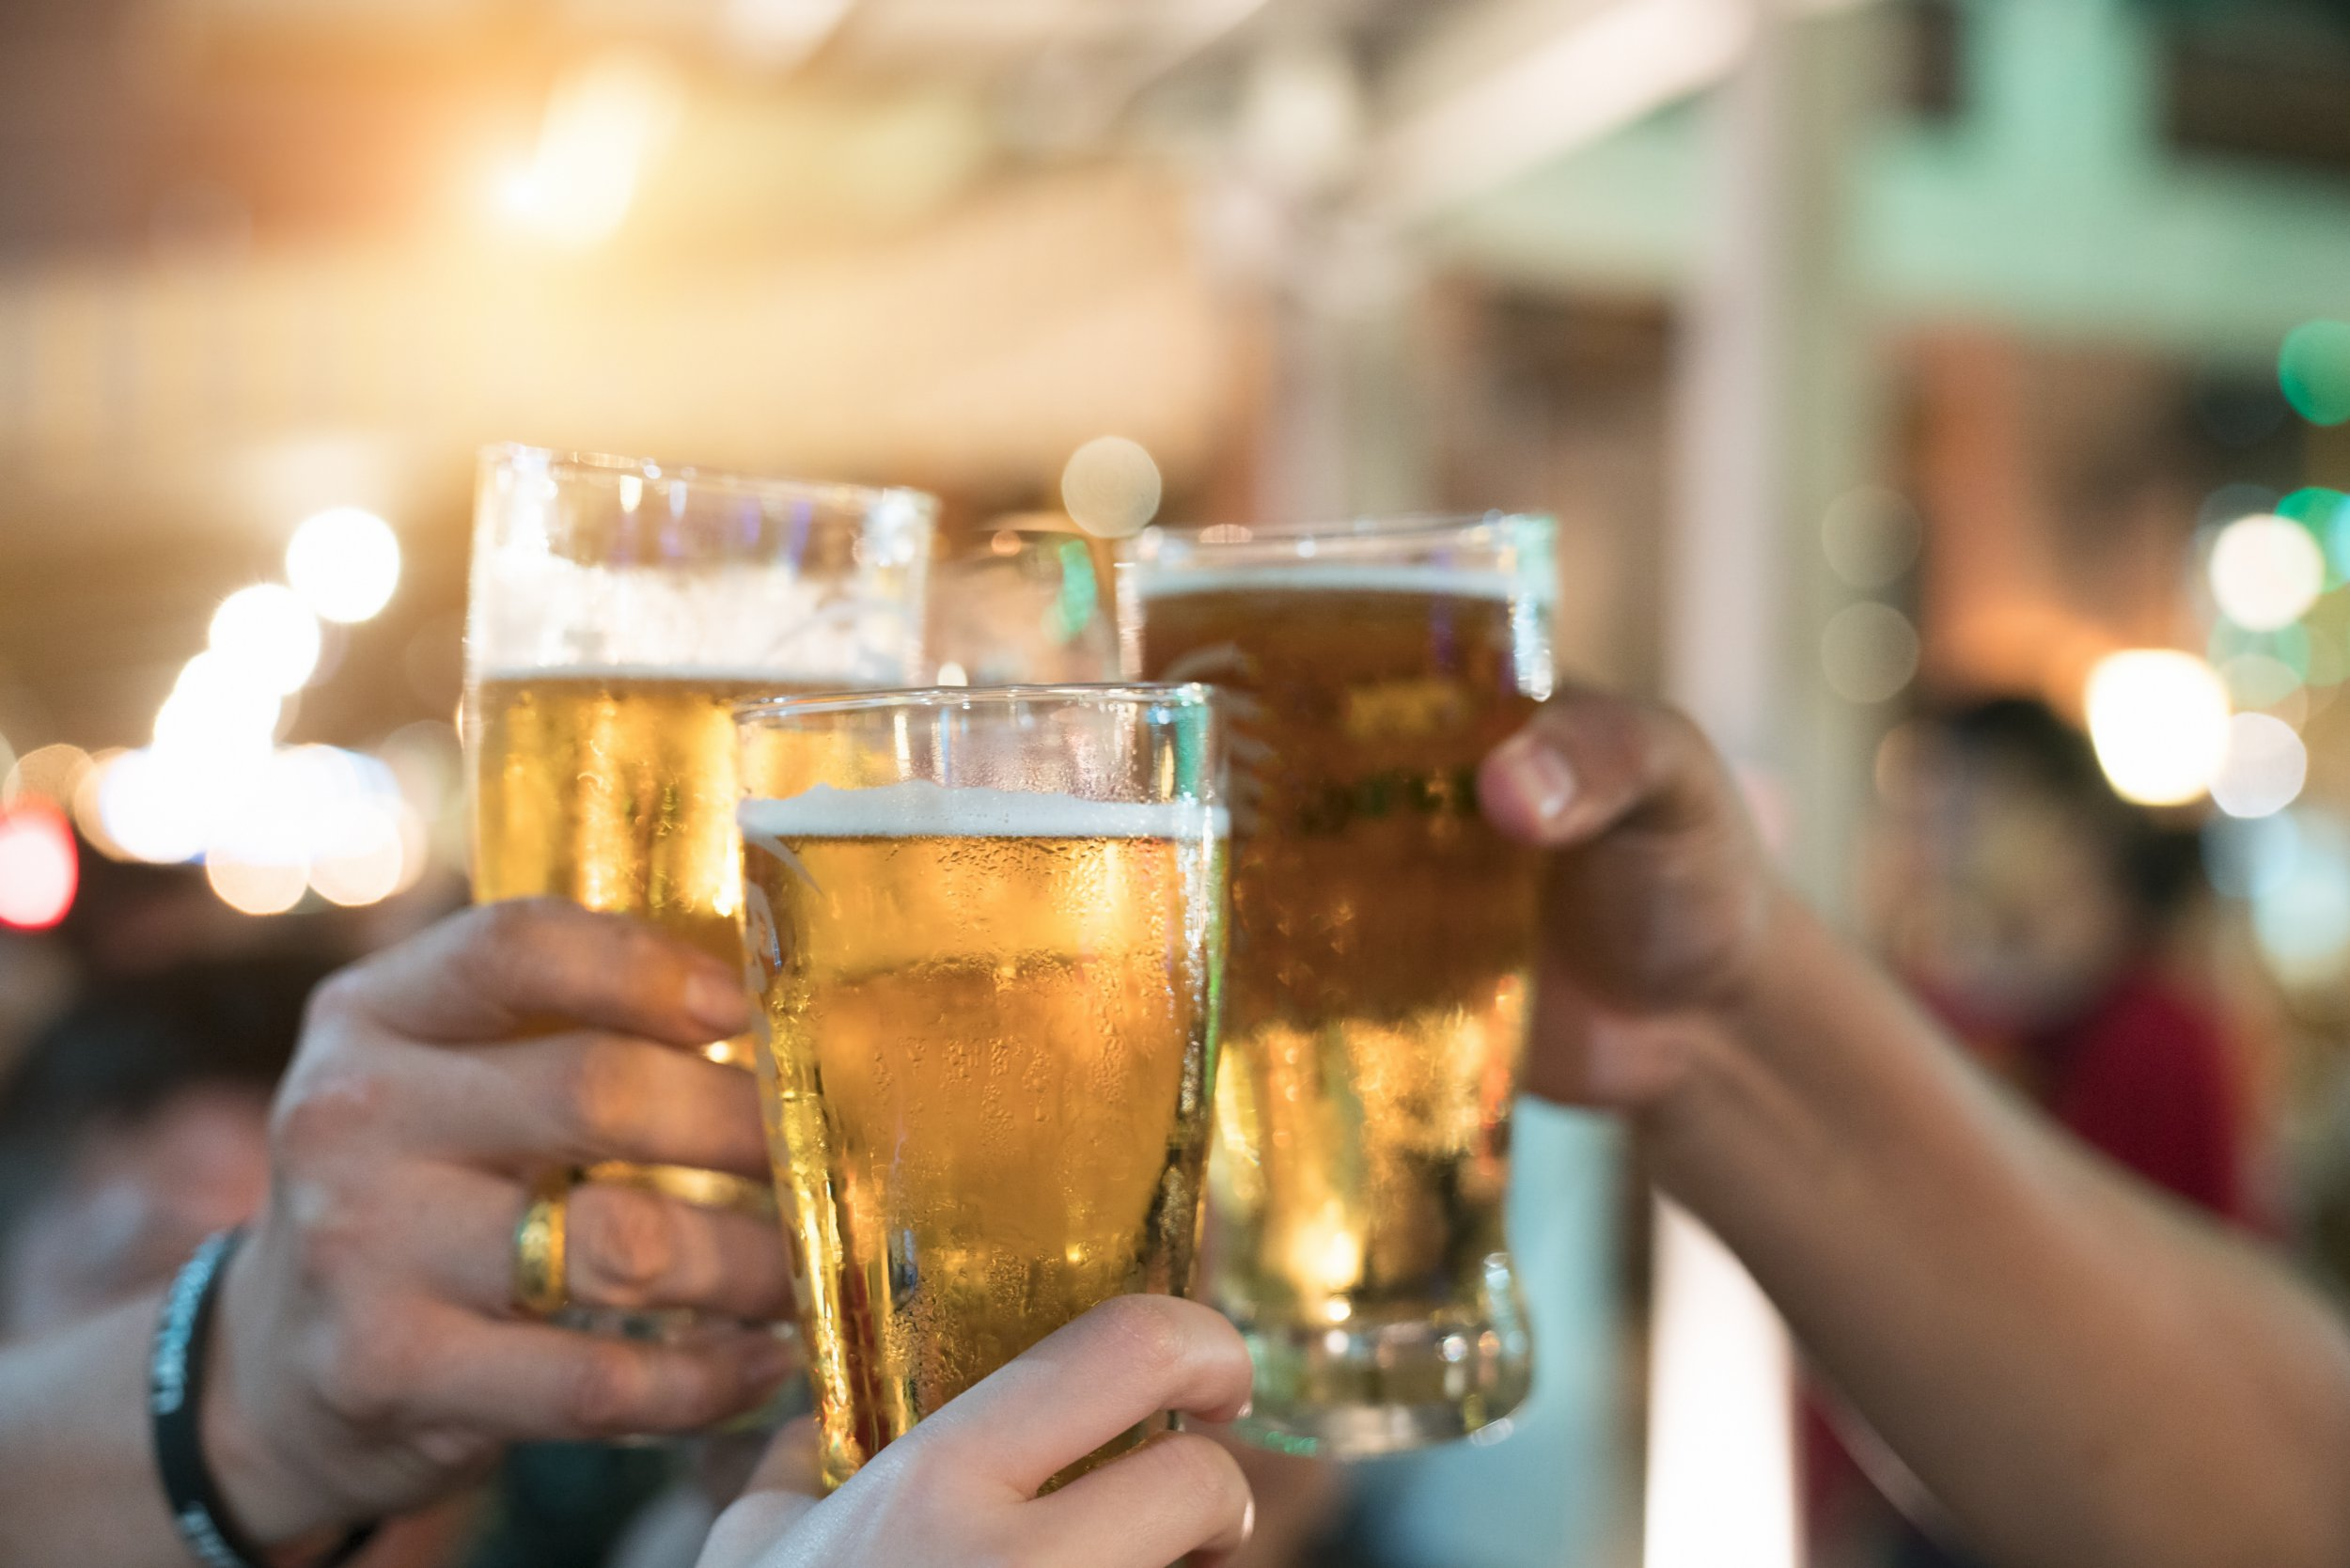 Science has finally worked out why British people drink so much